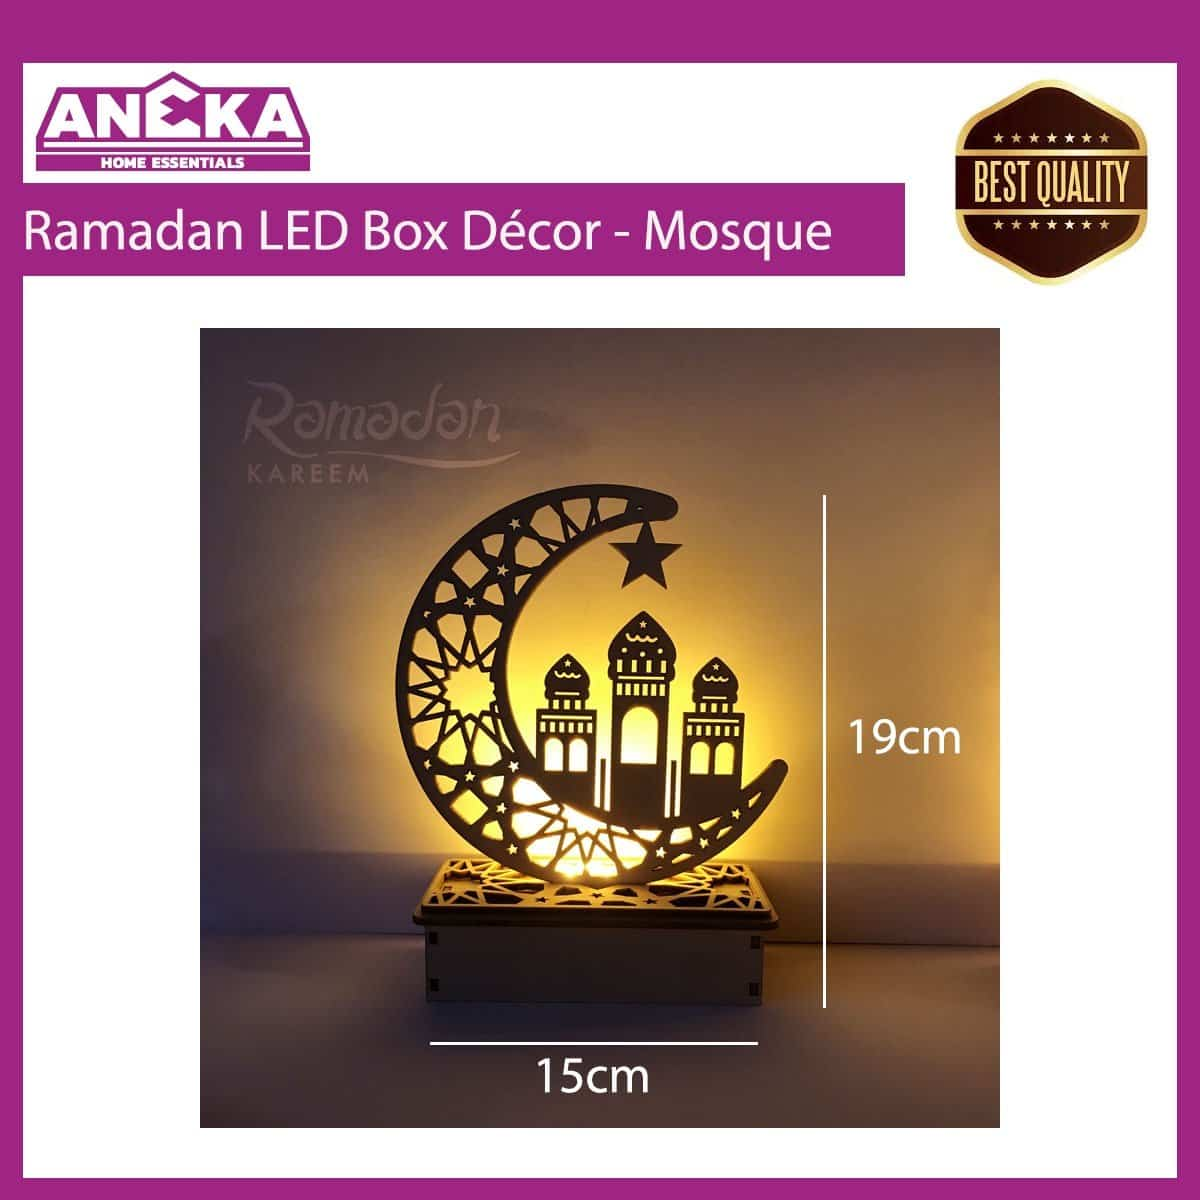 Ramadan LED Box Décor - Mosque